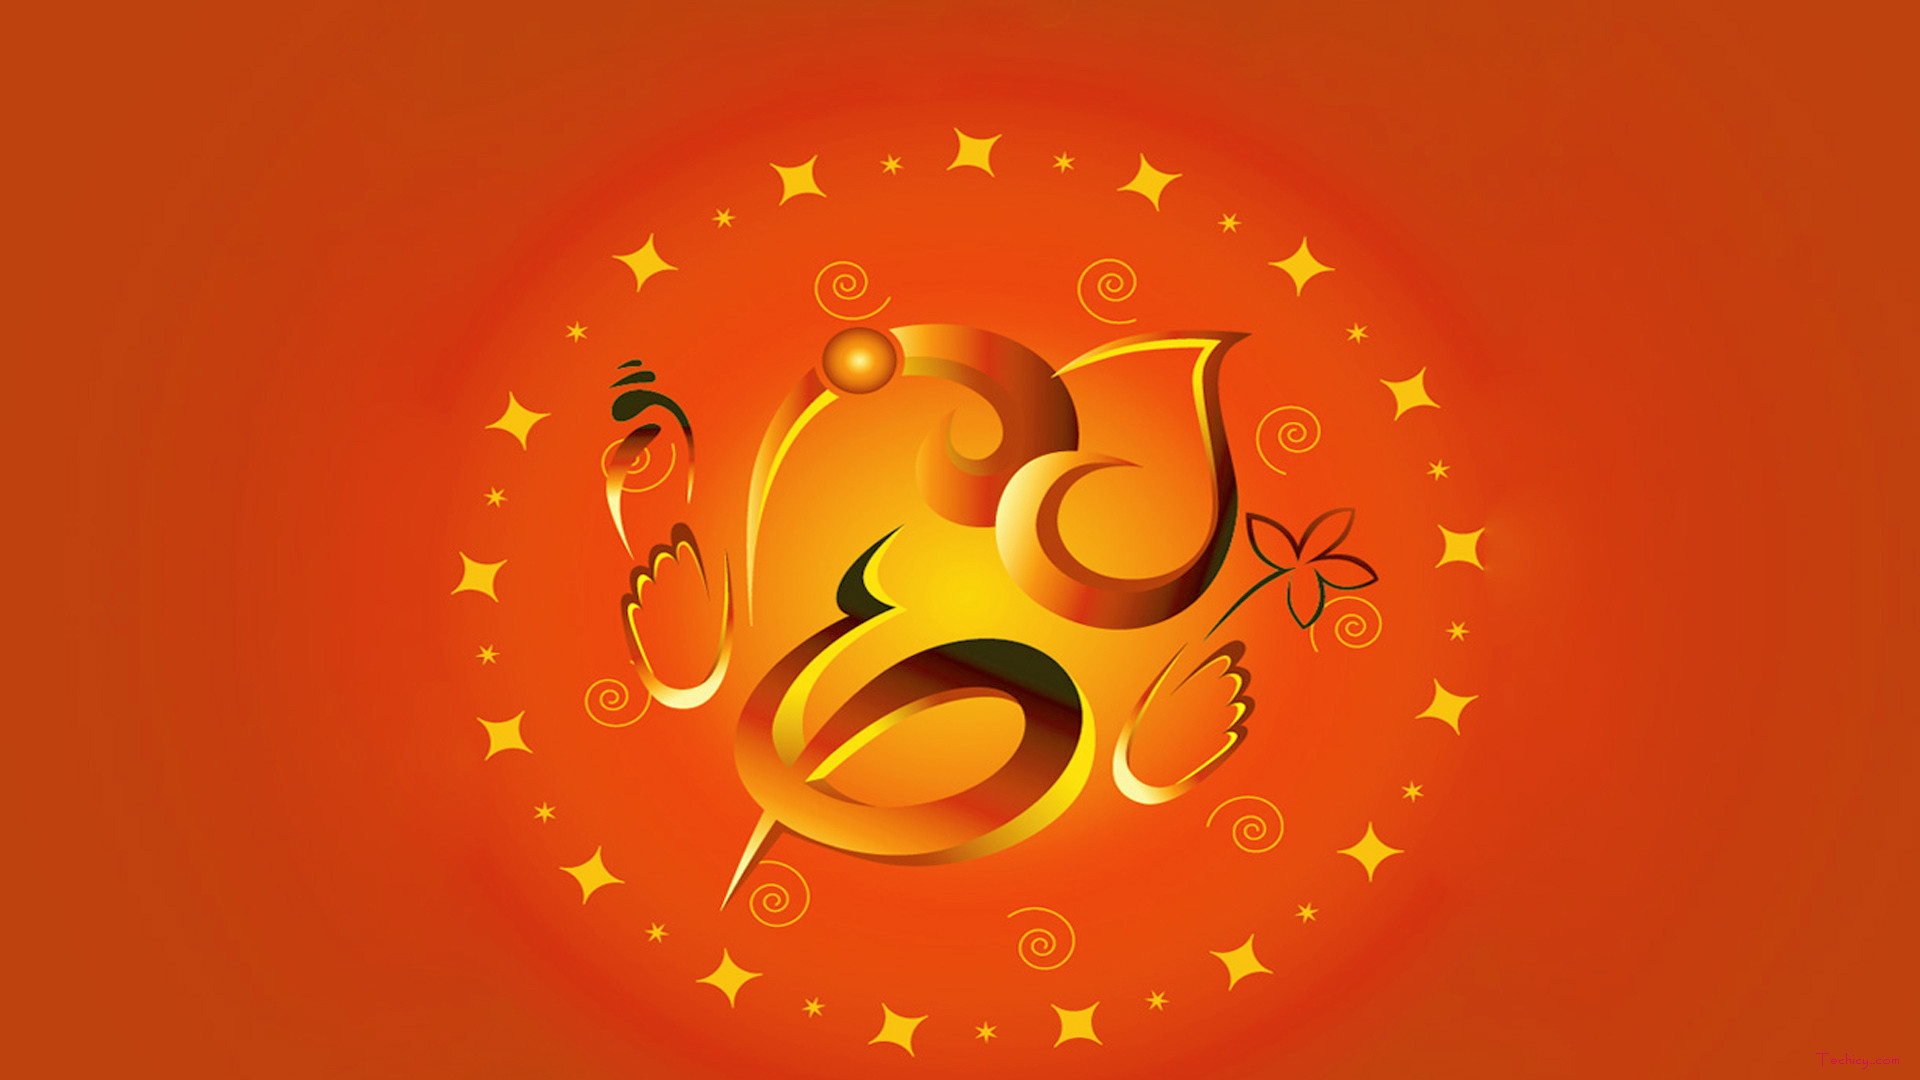 Download Ganesh Chaturthi HD Images & Wallpapers …